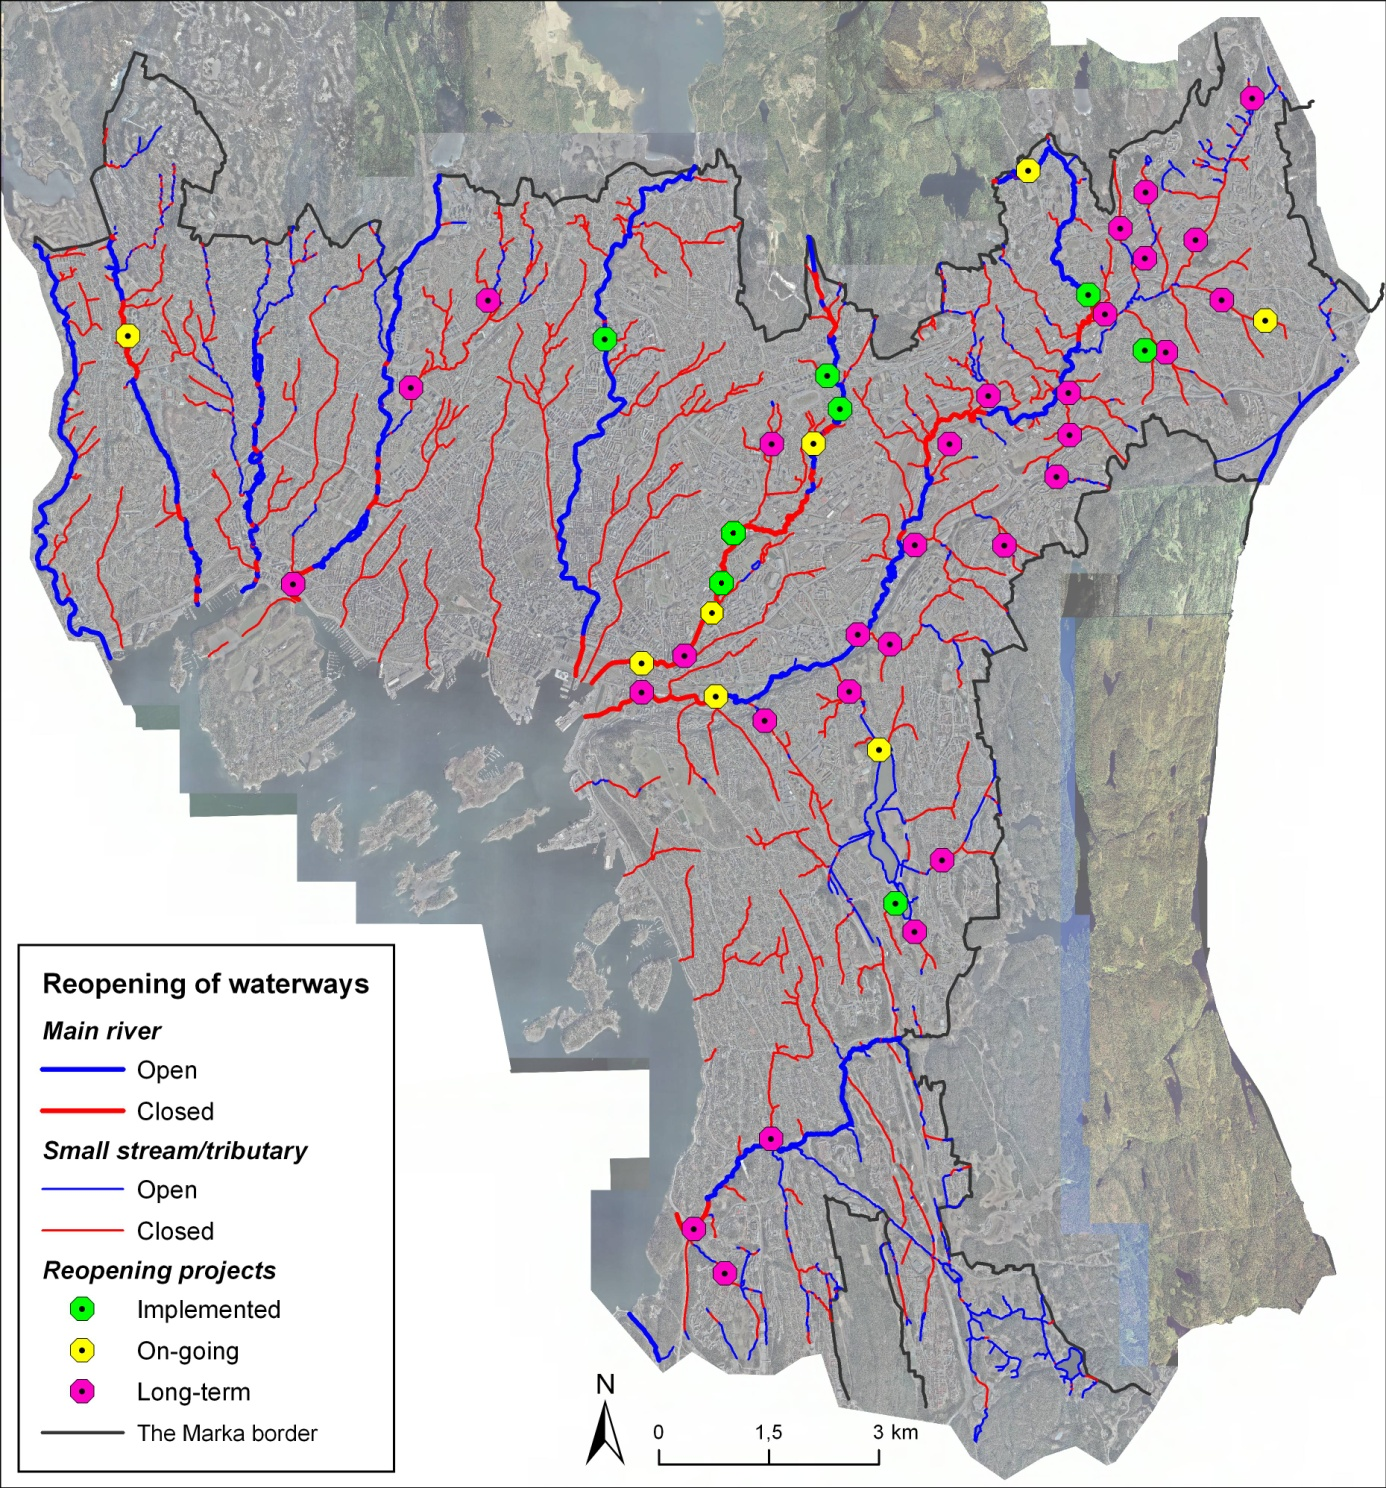 Figure 1: The map illustrates open and closed rivers and streams with tributaries in Oslo's urban zone today, as well as implemented, on-going and planned long-term reopening projects.